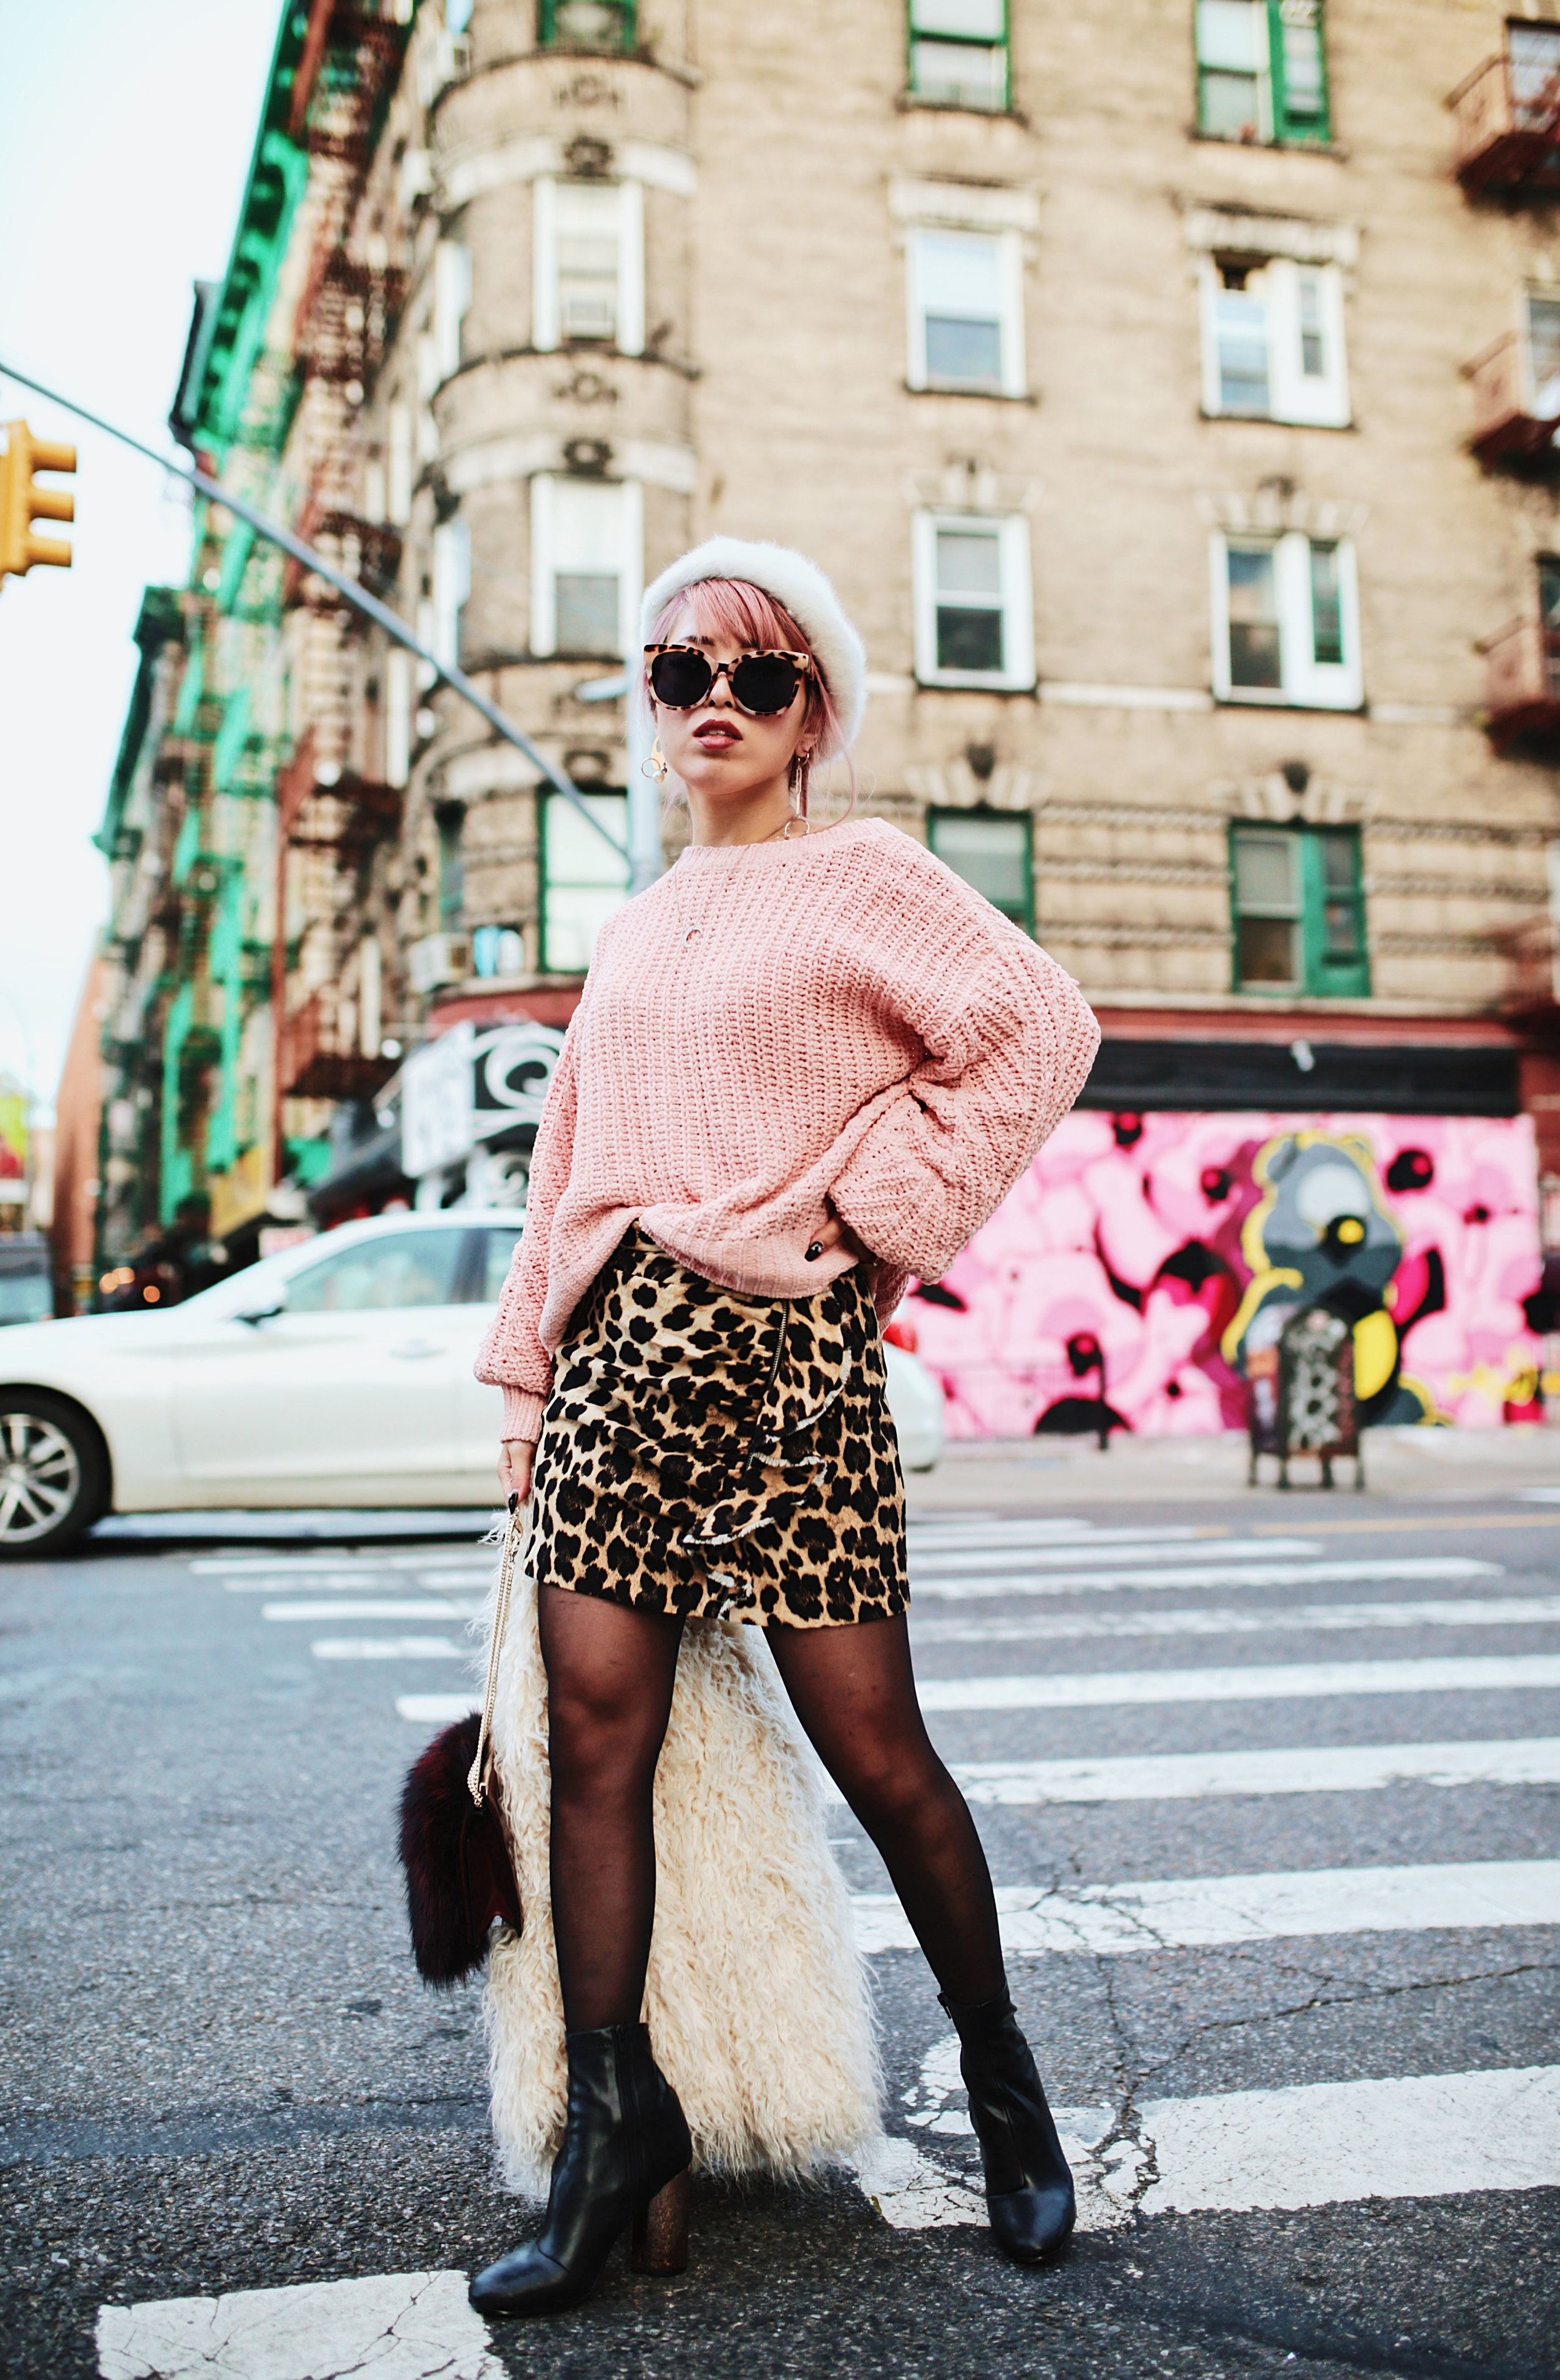 H&M Pink Sweater-Zara leopar prins mini skirt-H&M white shaggy coat-DVF fur bag-anthropologie white beret-Urban Outfitters Sunglasses-ALDO Ankle Boots-Mango Earrings-Aikas Love Closet-New York City-Pink Hair-Style Fashion Blogger-Seattle-Japanese_Petite fashion blogger 2